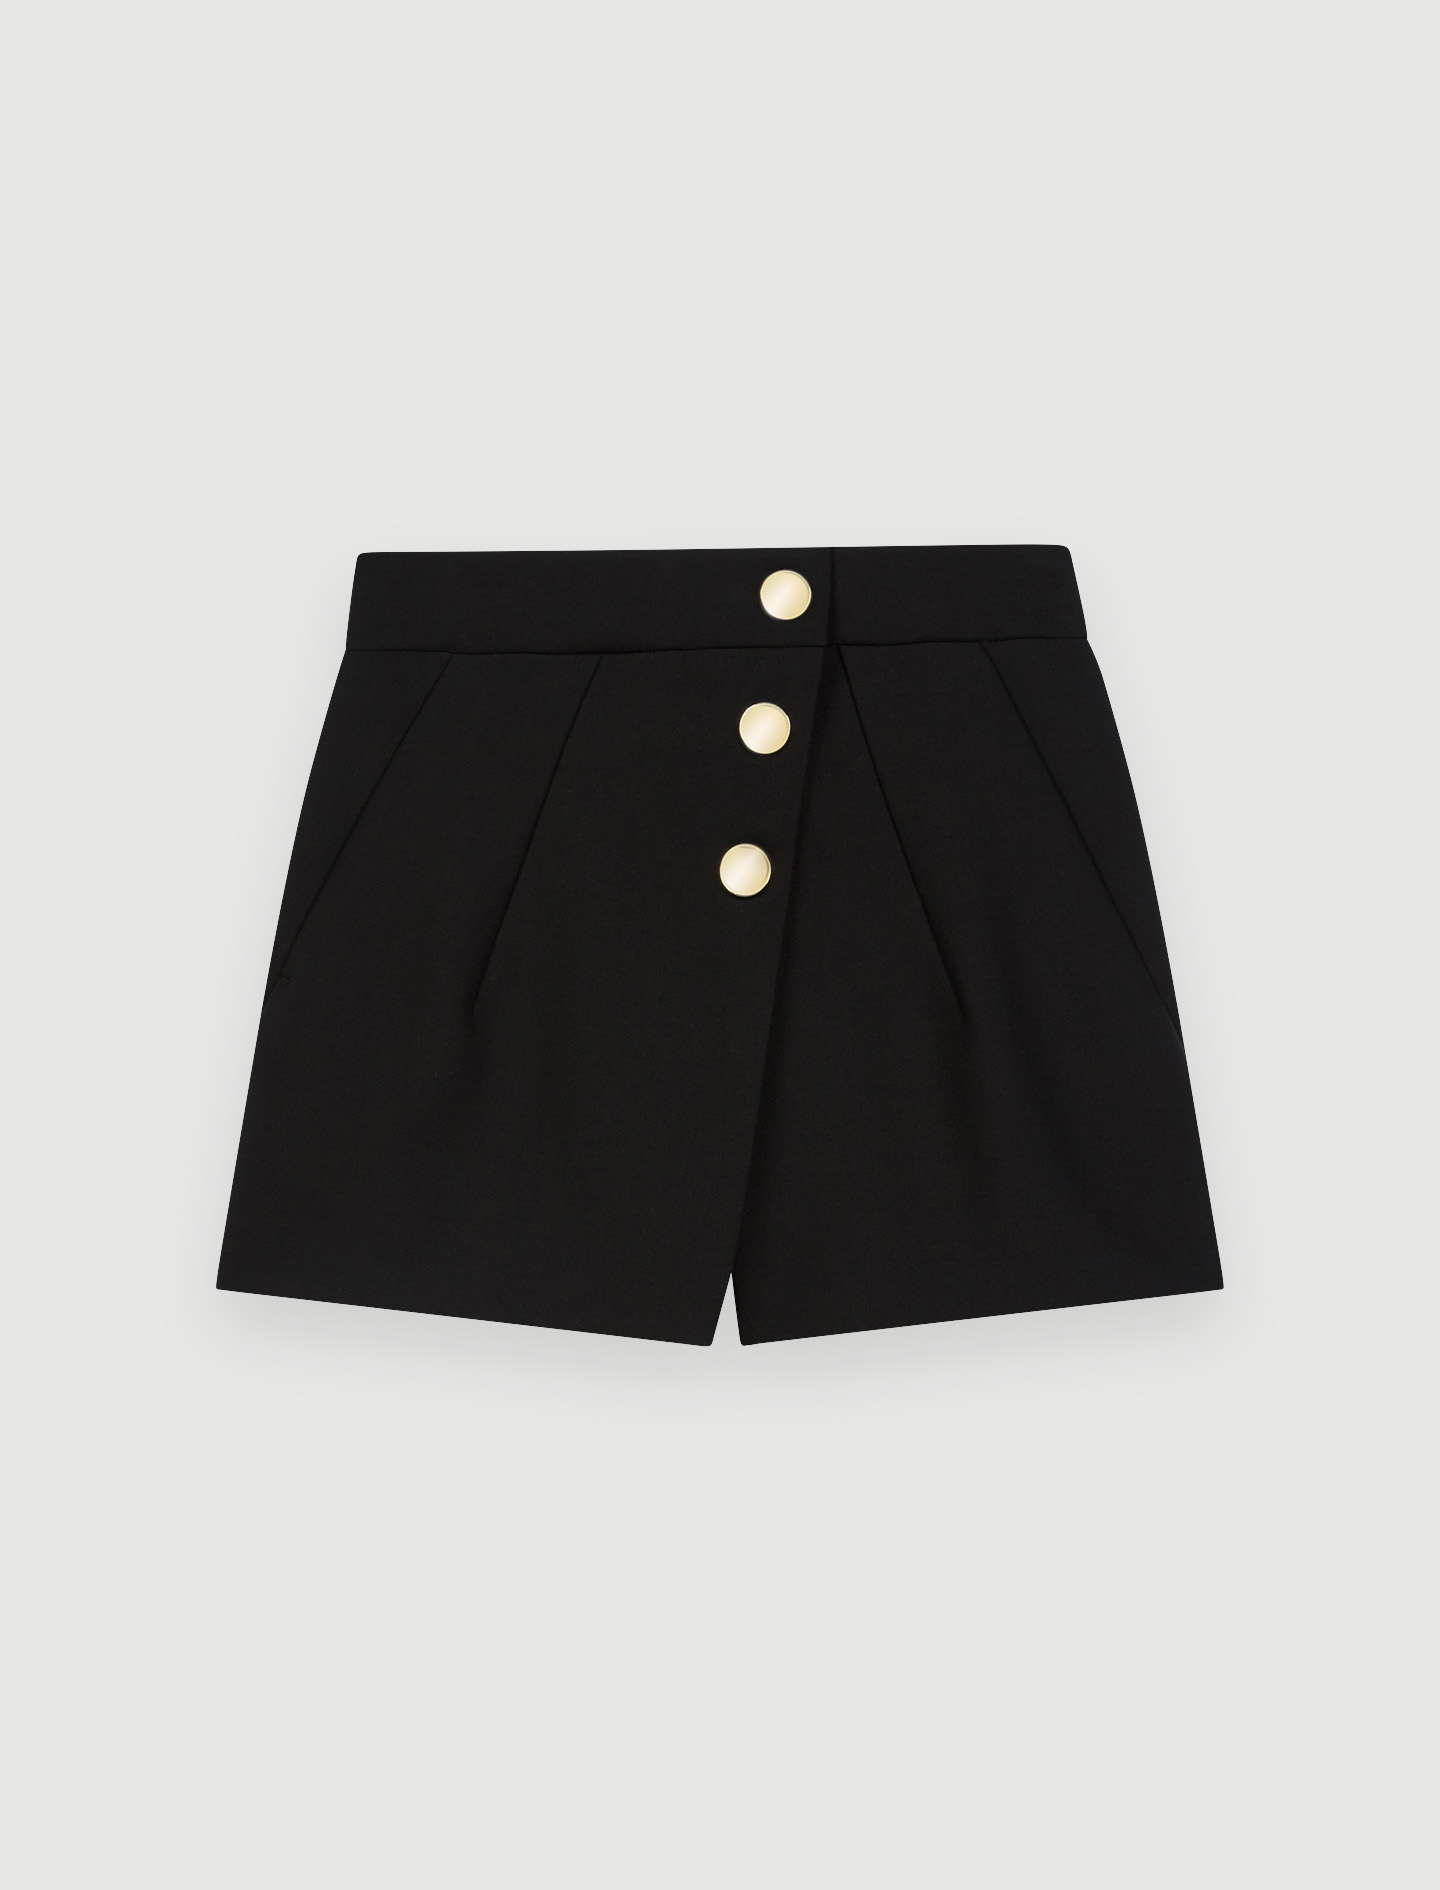 Trompe l'oleil shorts, mirrored buttons - Black